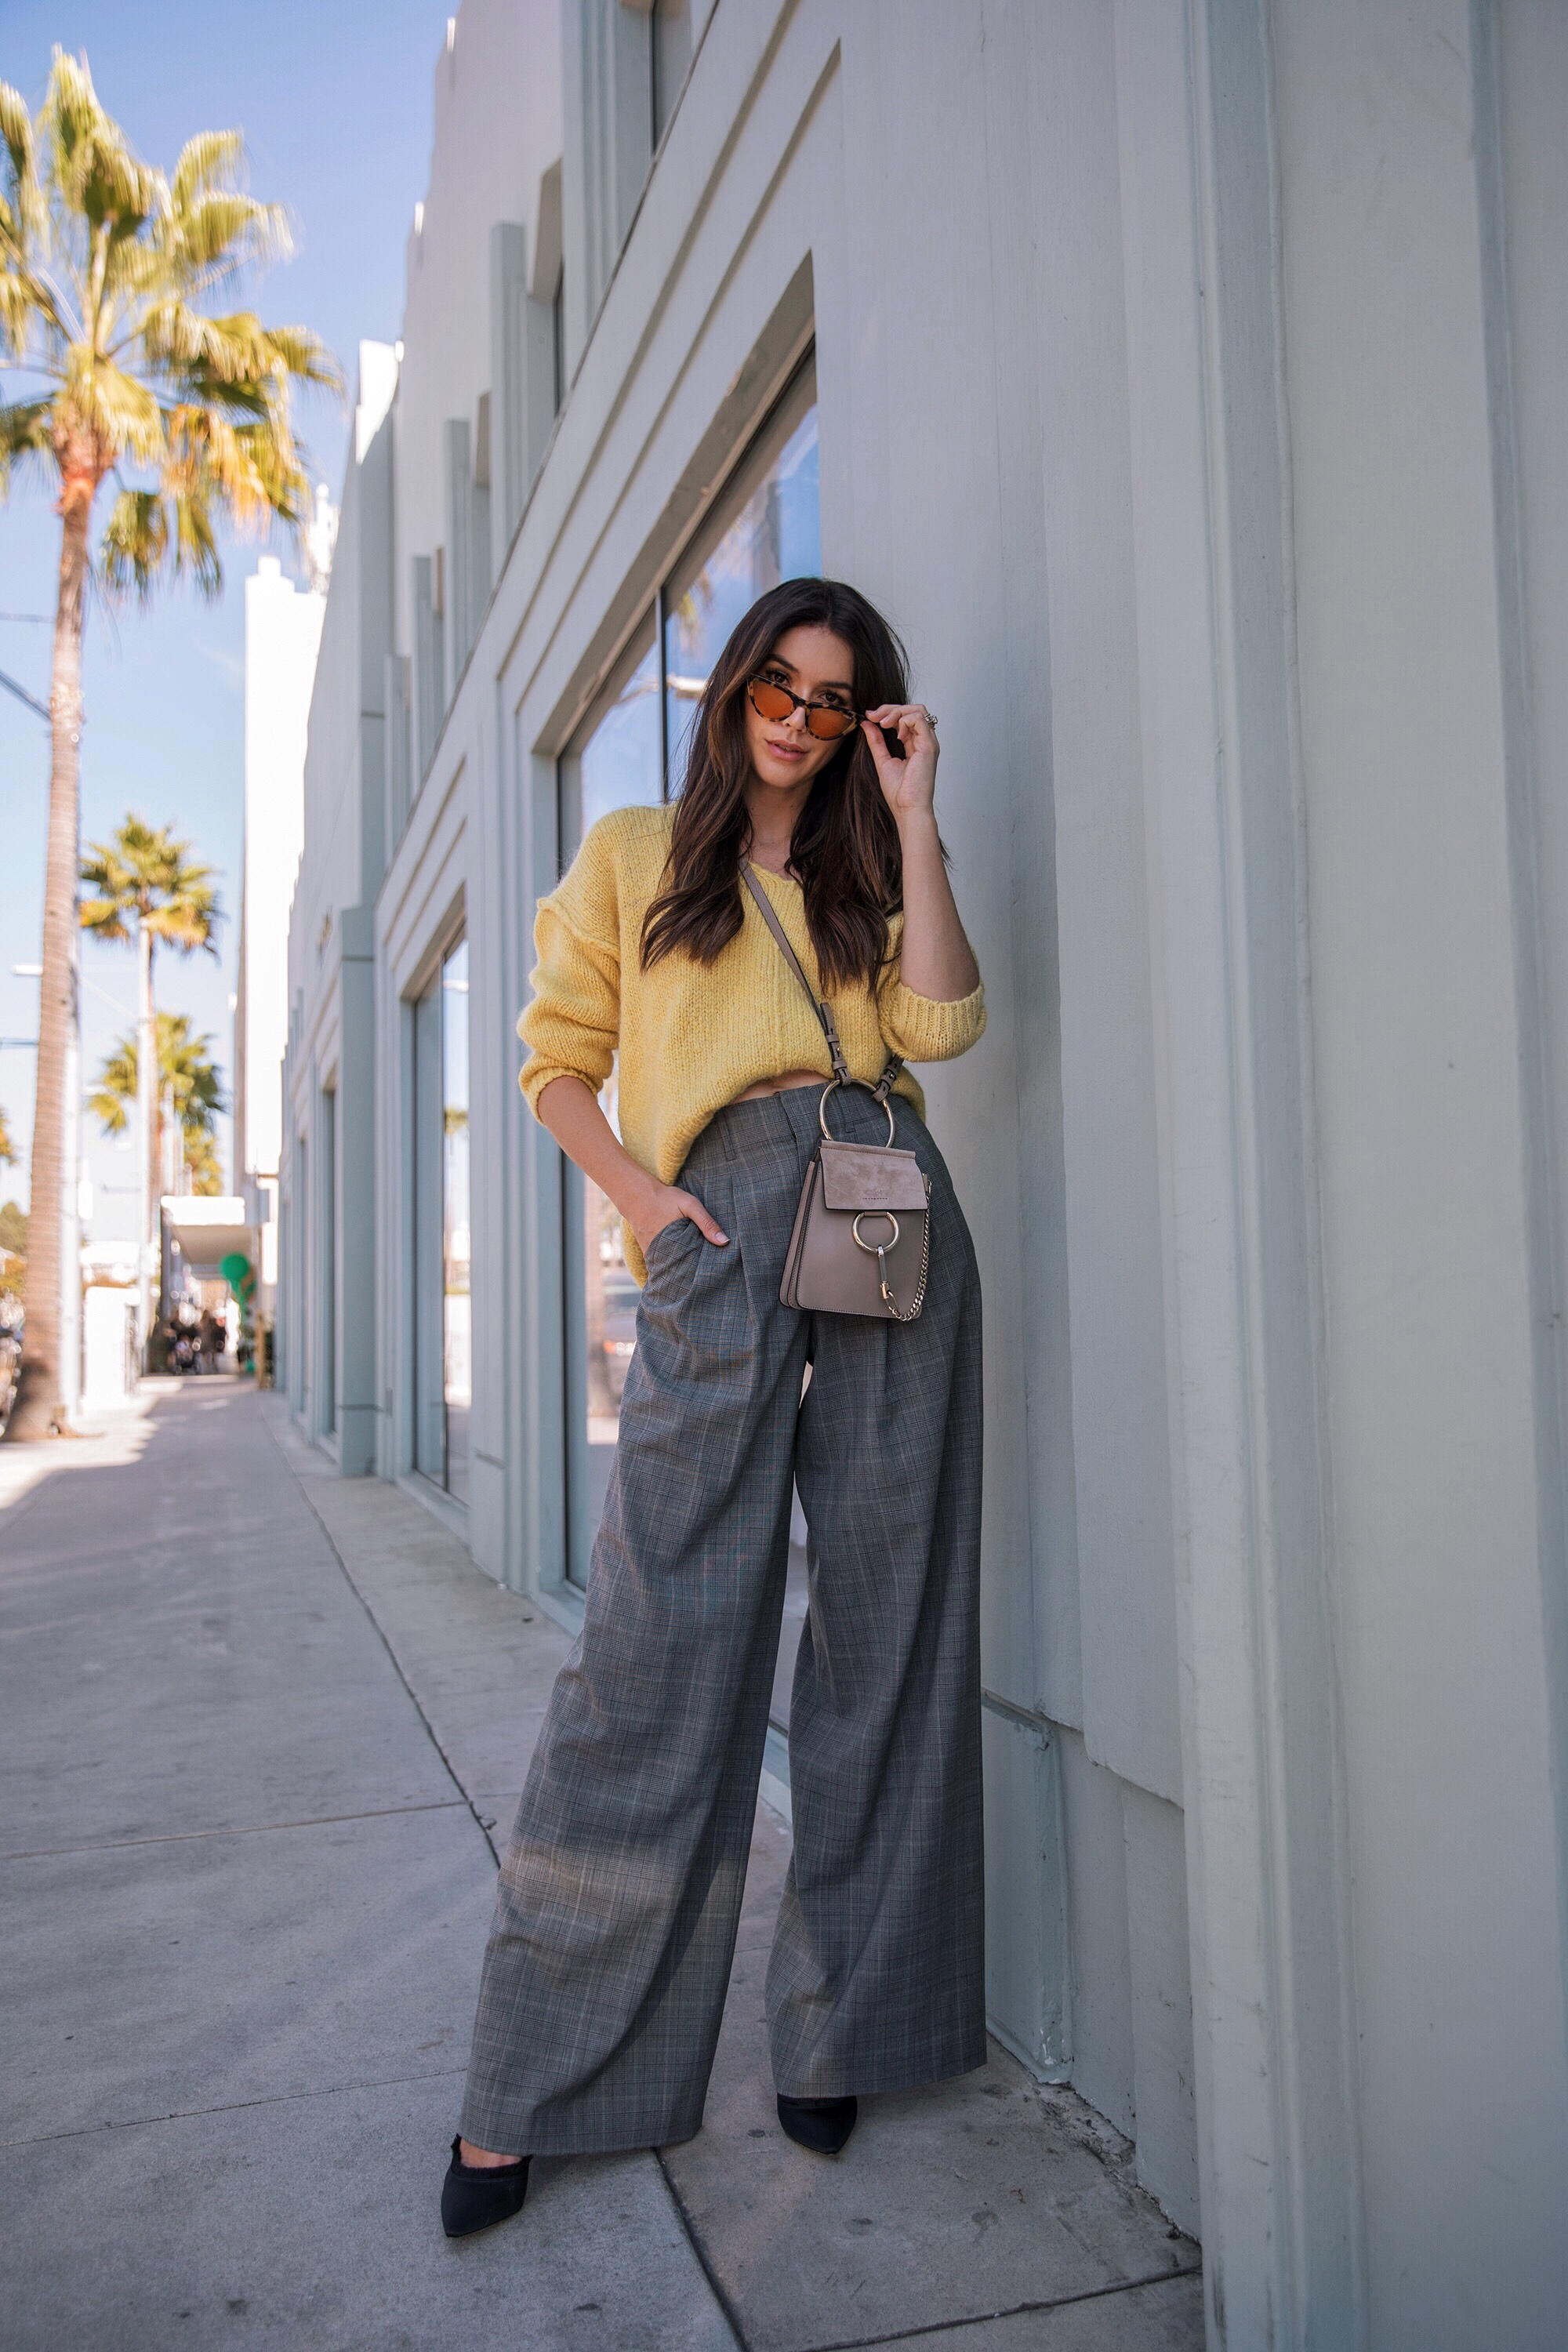 Thrifts and Threads - Oversized Silhouettes